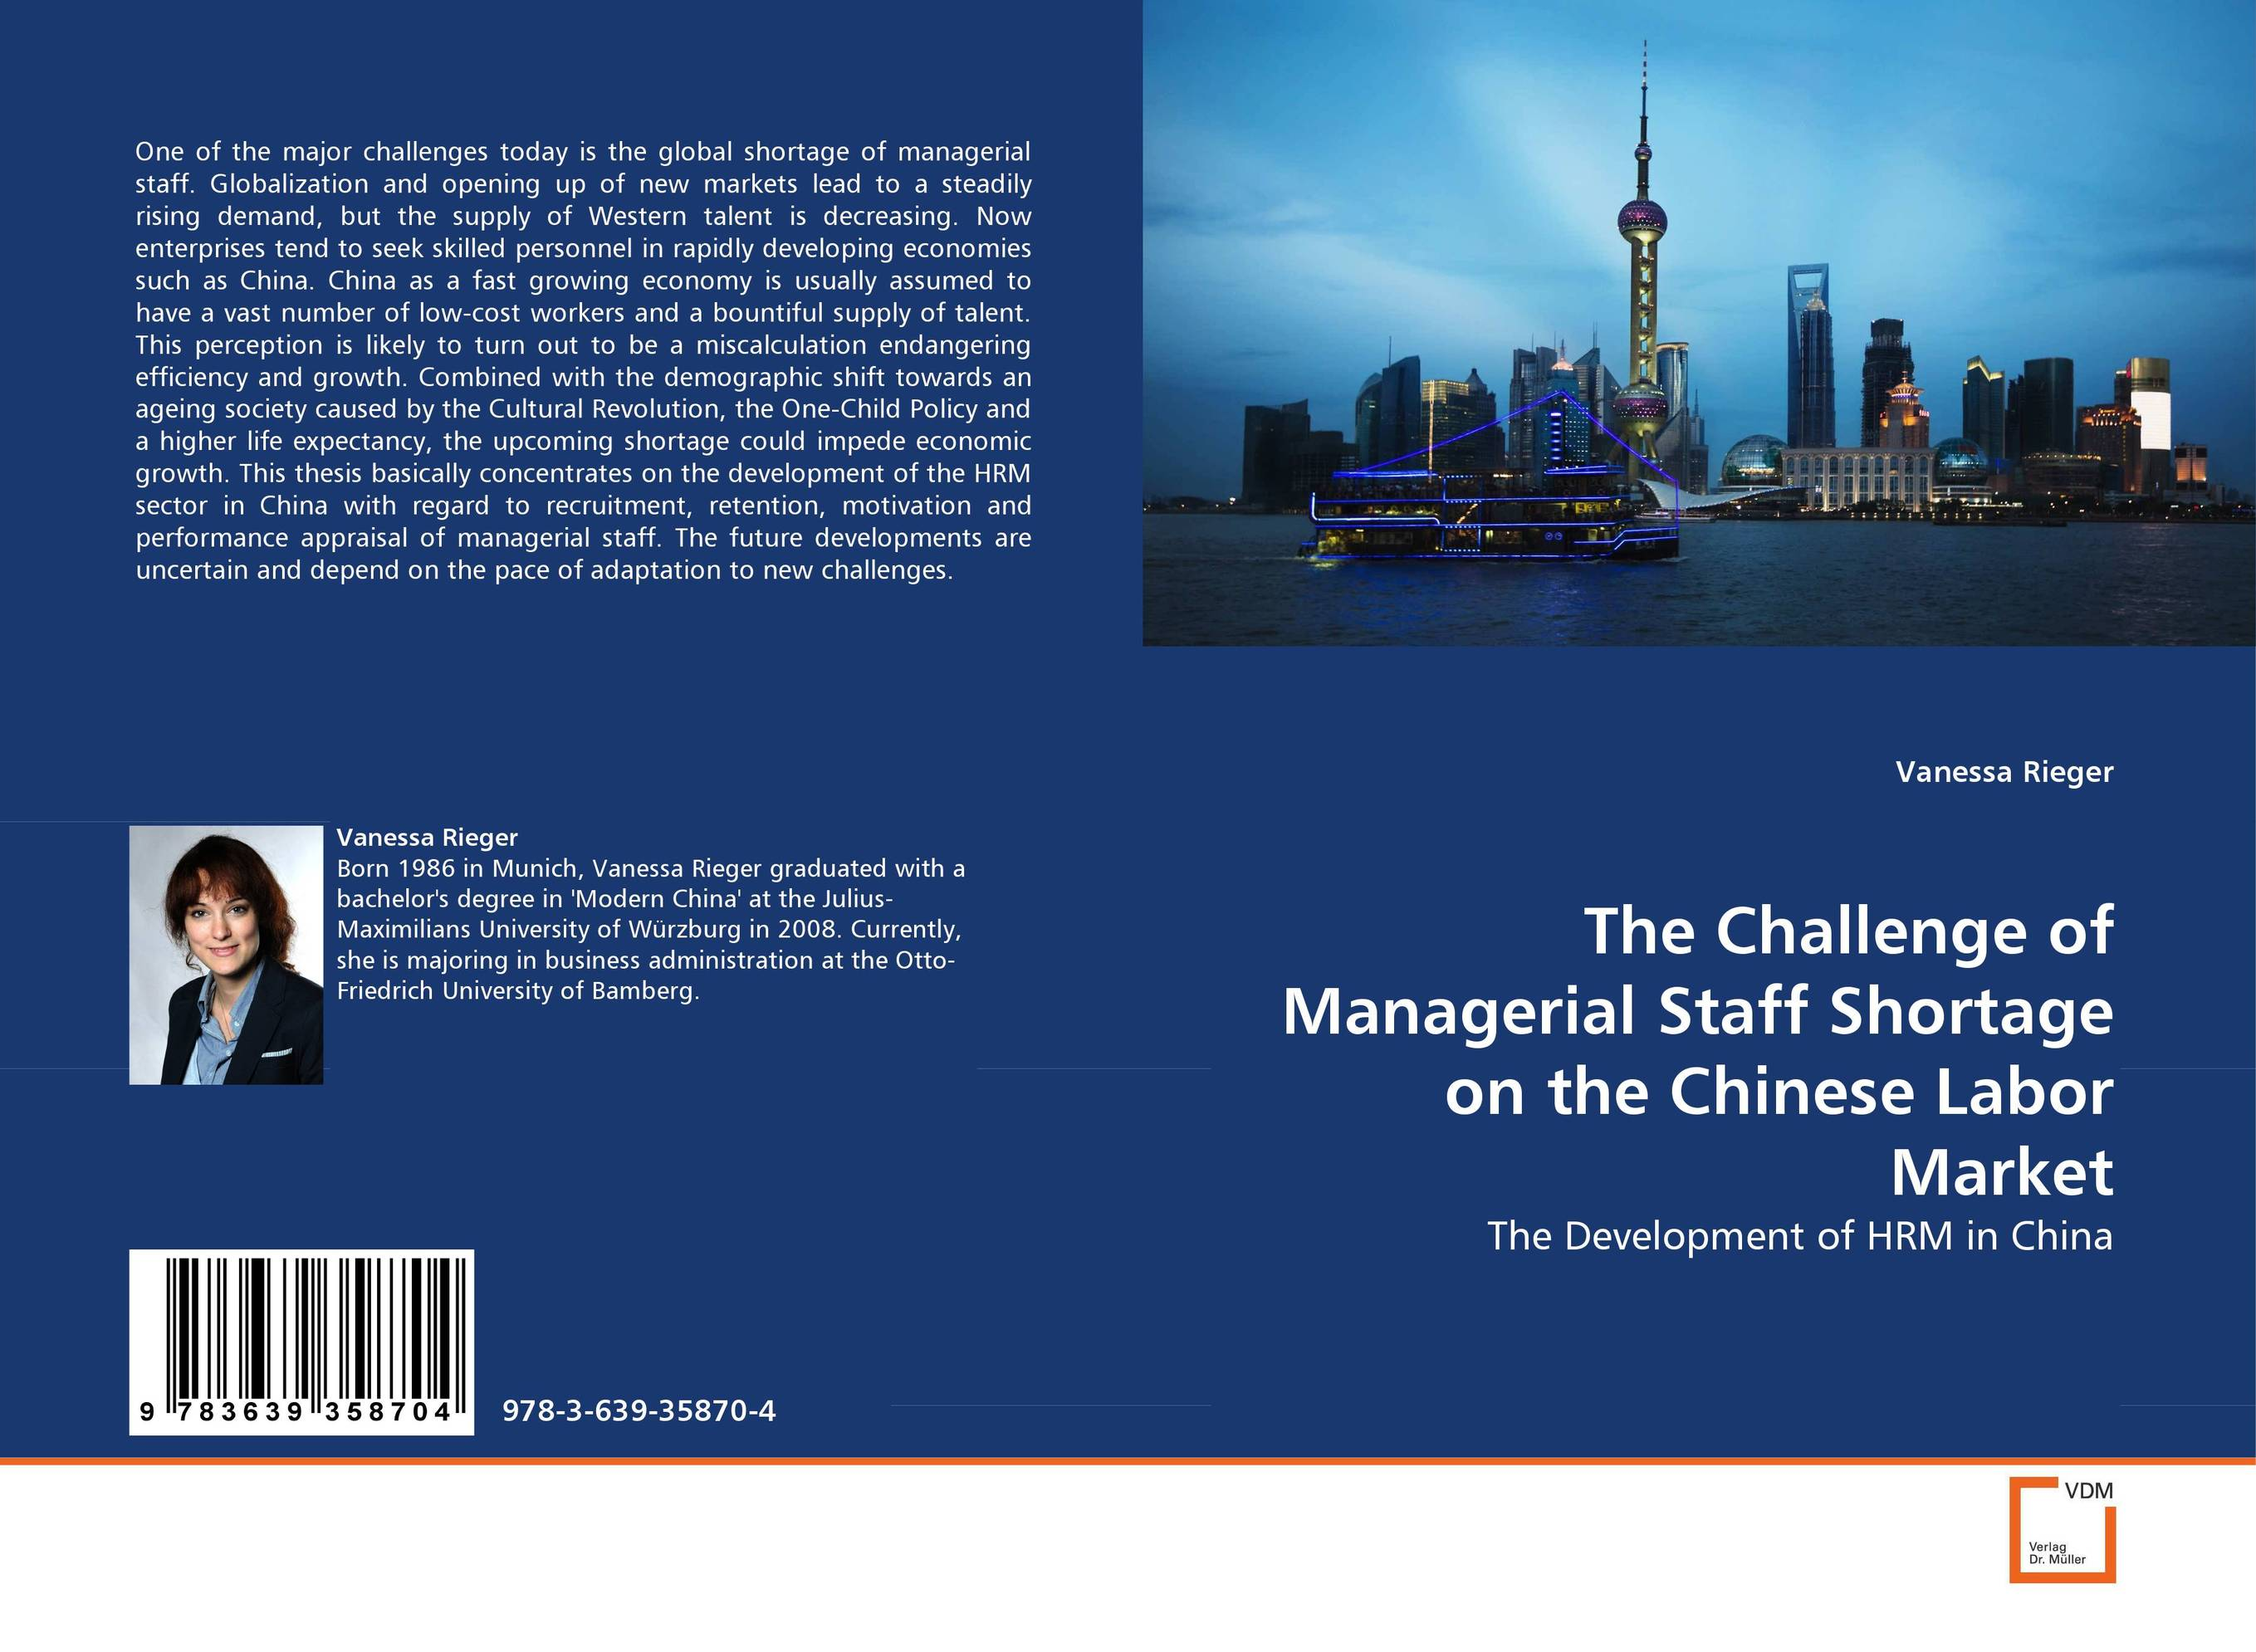 The Challenge of Managerial Staff Shortage on the Chinese Labor Market david holloman m china catalyst powering global growth by reaching the fastest growing consumer market in the world